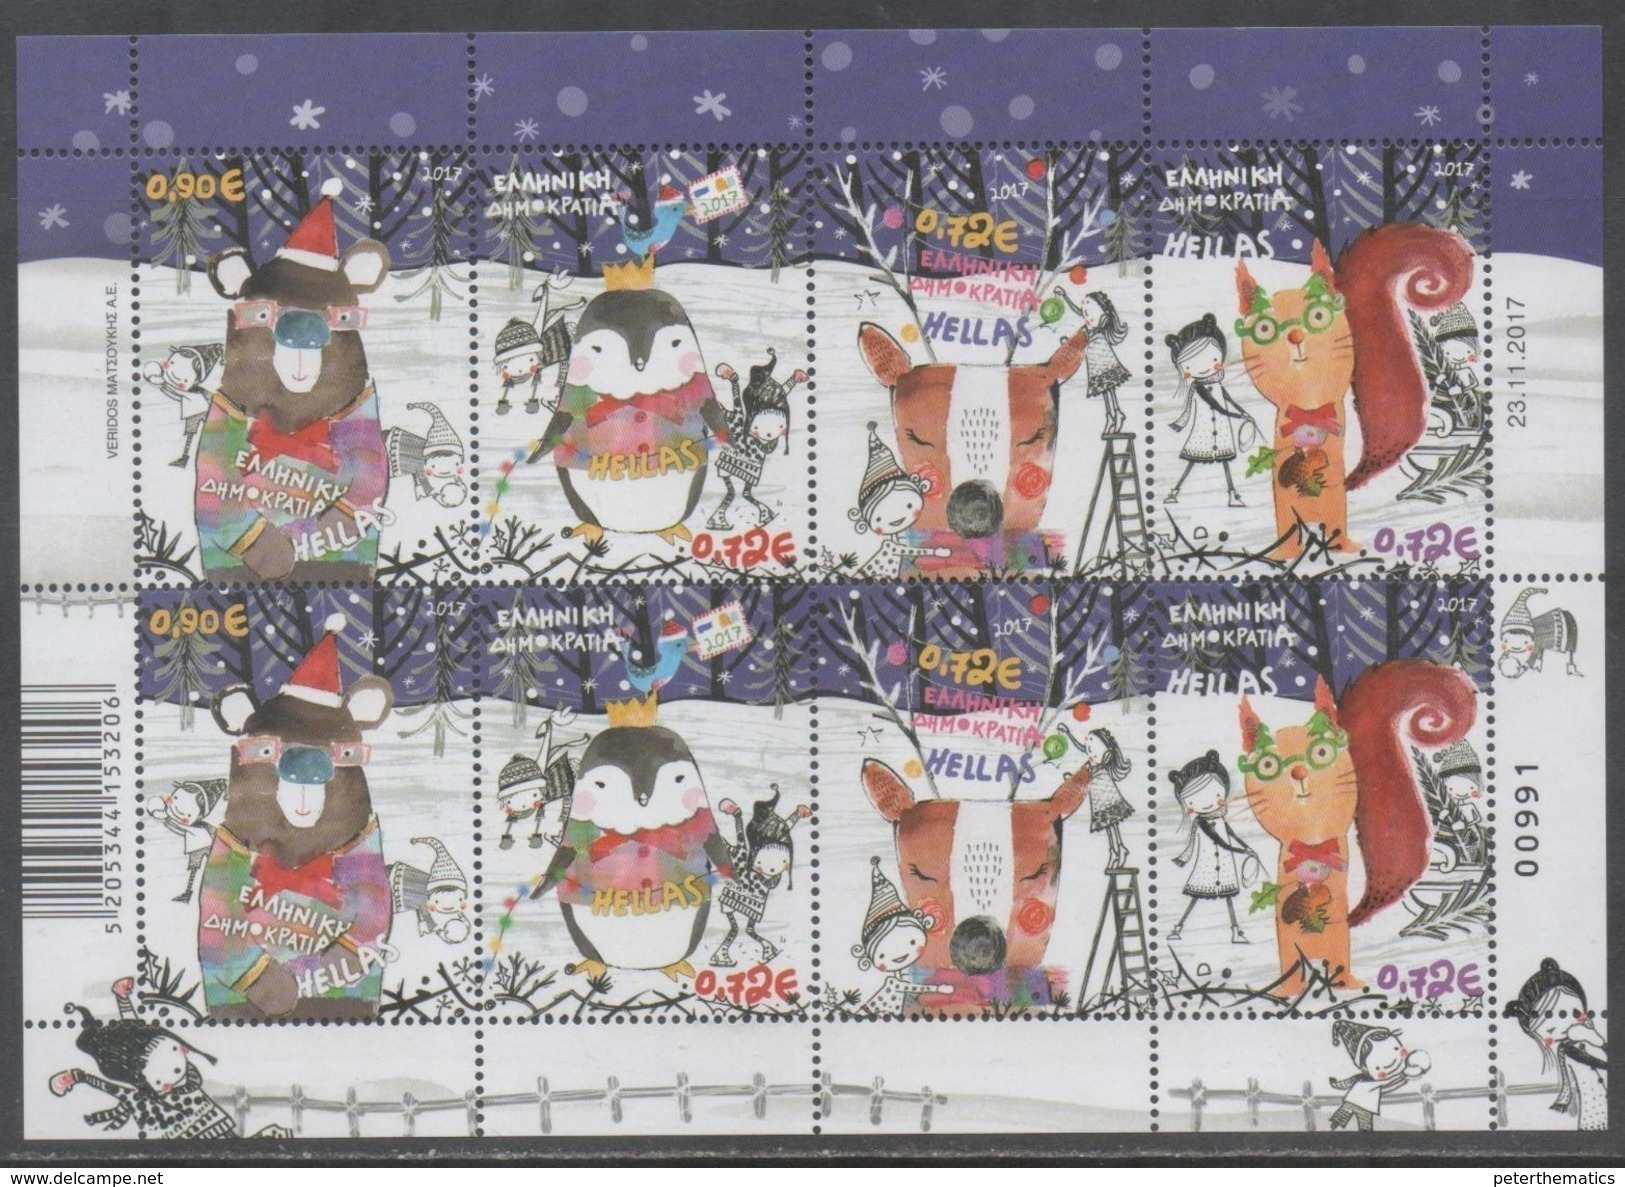 GREECE, MNH, 2017, CHRISTMAS, PENGUINS, REEINDEER, BEARS, STYLIZED, SHEETLET OF 2 SETS, ONLY 5000 SLTS PRODUCED - Christmas